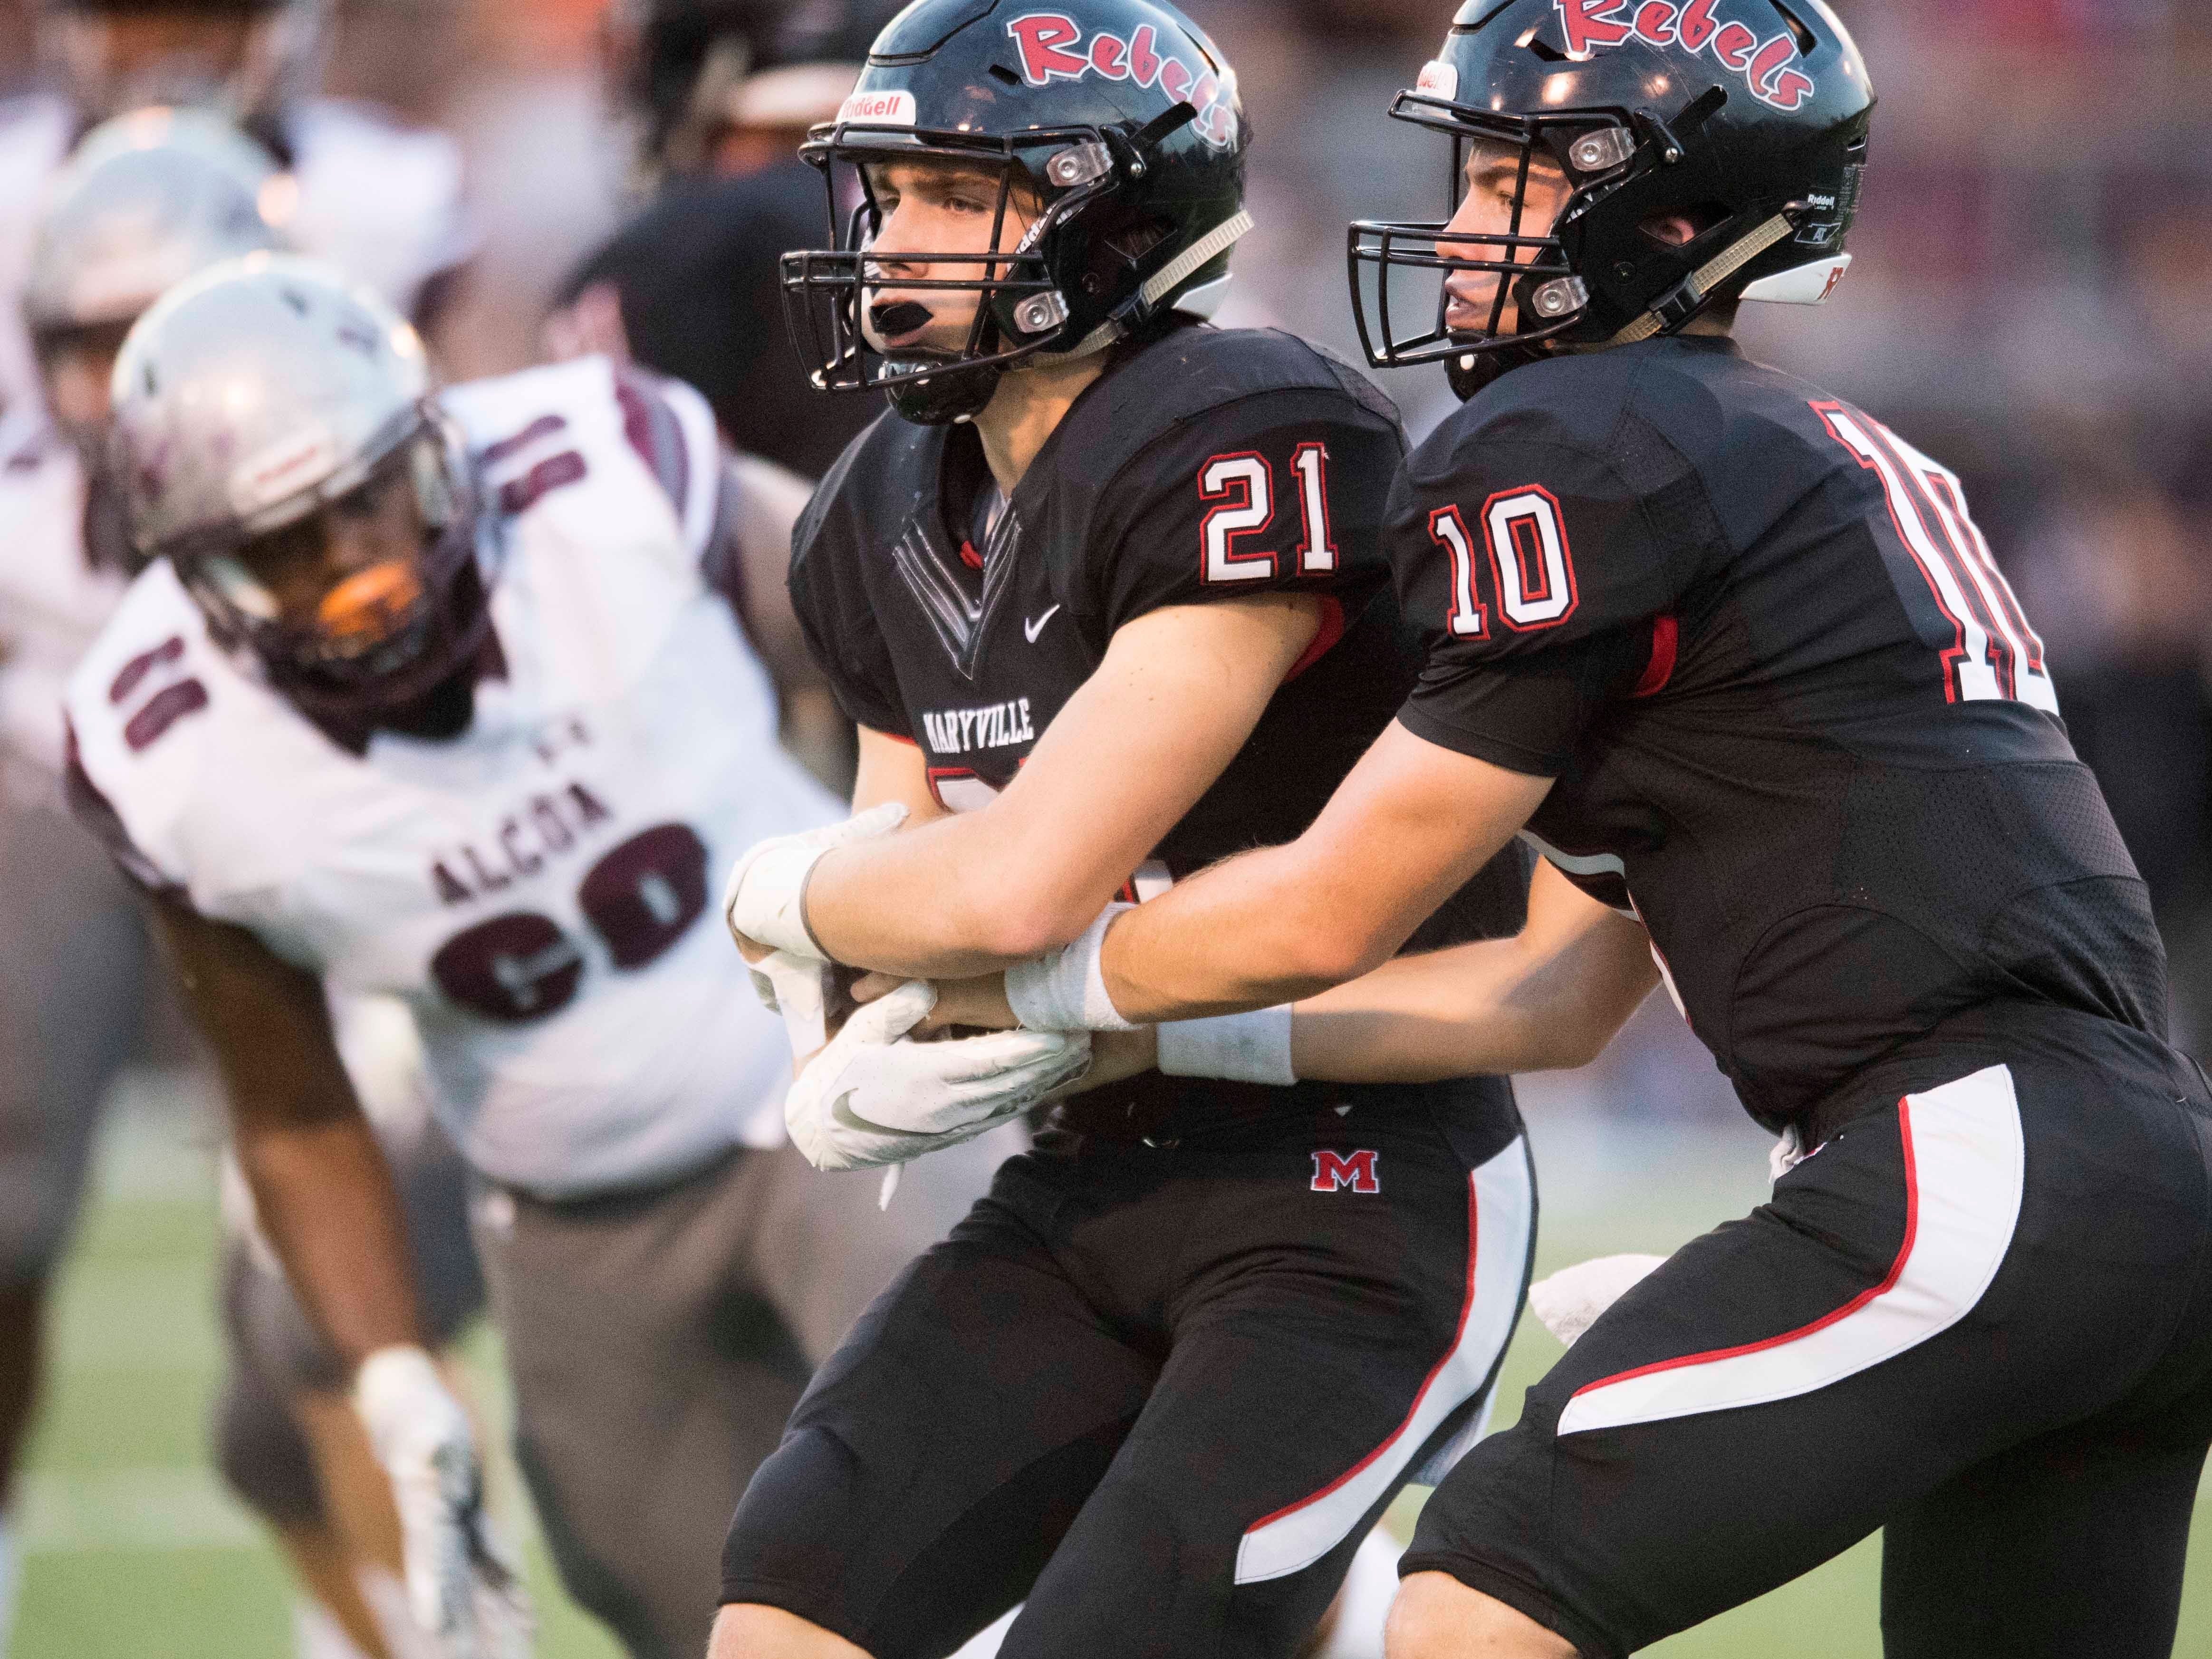 Maryville's Braden Carnes (10) hands the ball off to Bryson Teffeteller (21) in the football game at Maryville on Friday, September 7, 2018.